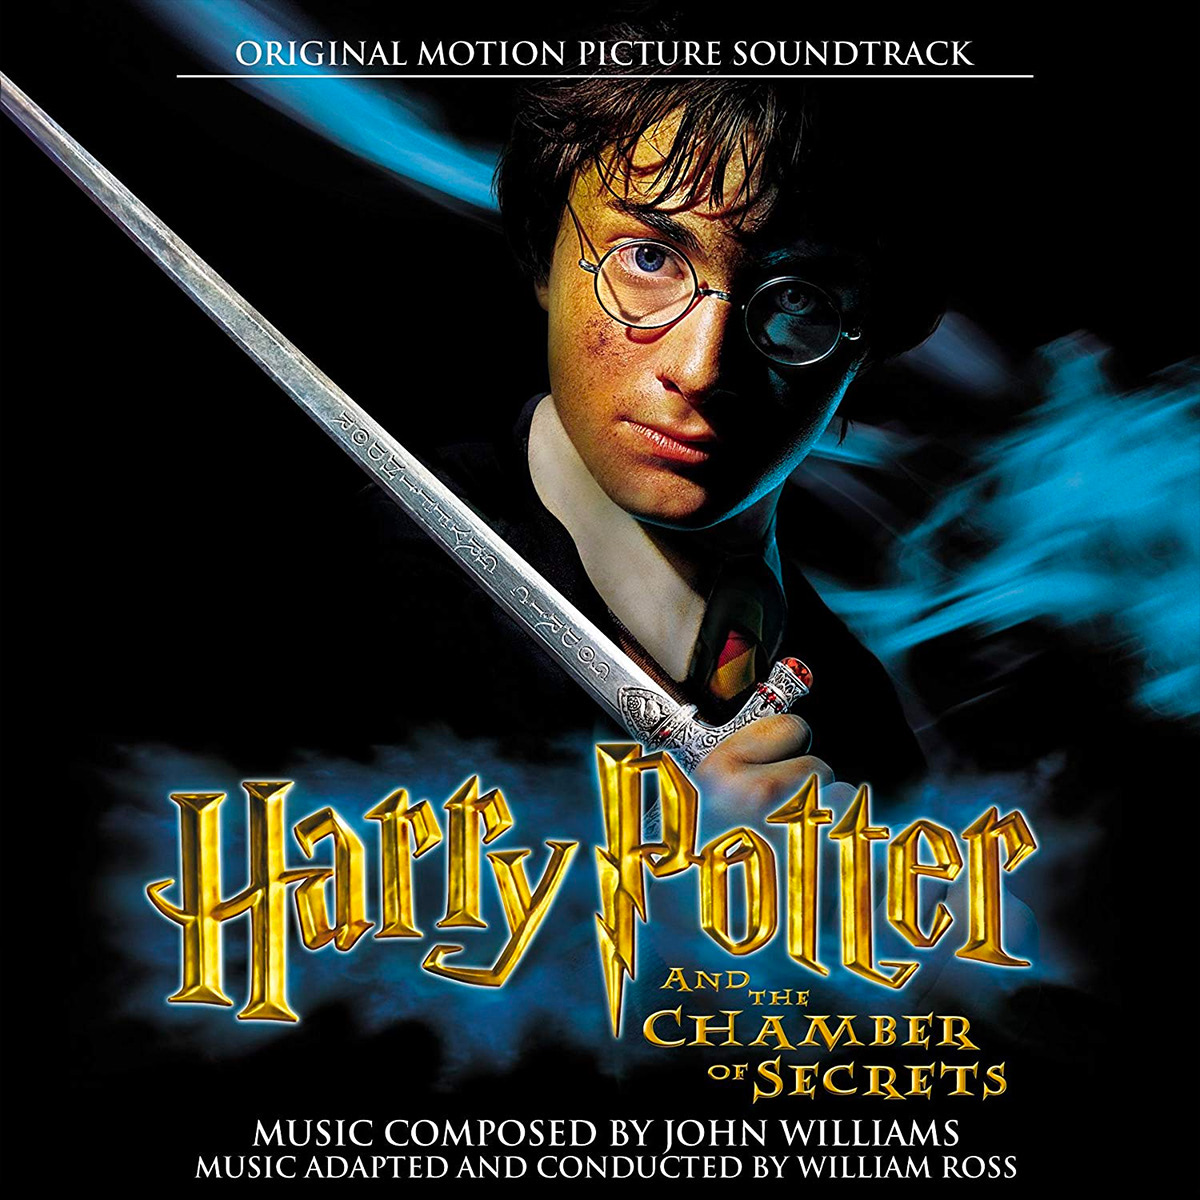 'Chamber of Secrets' soundtrack